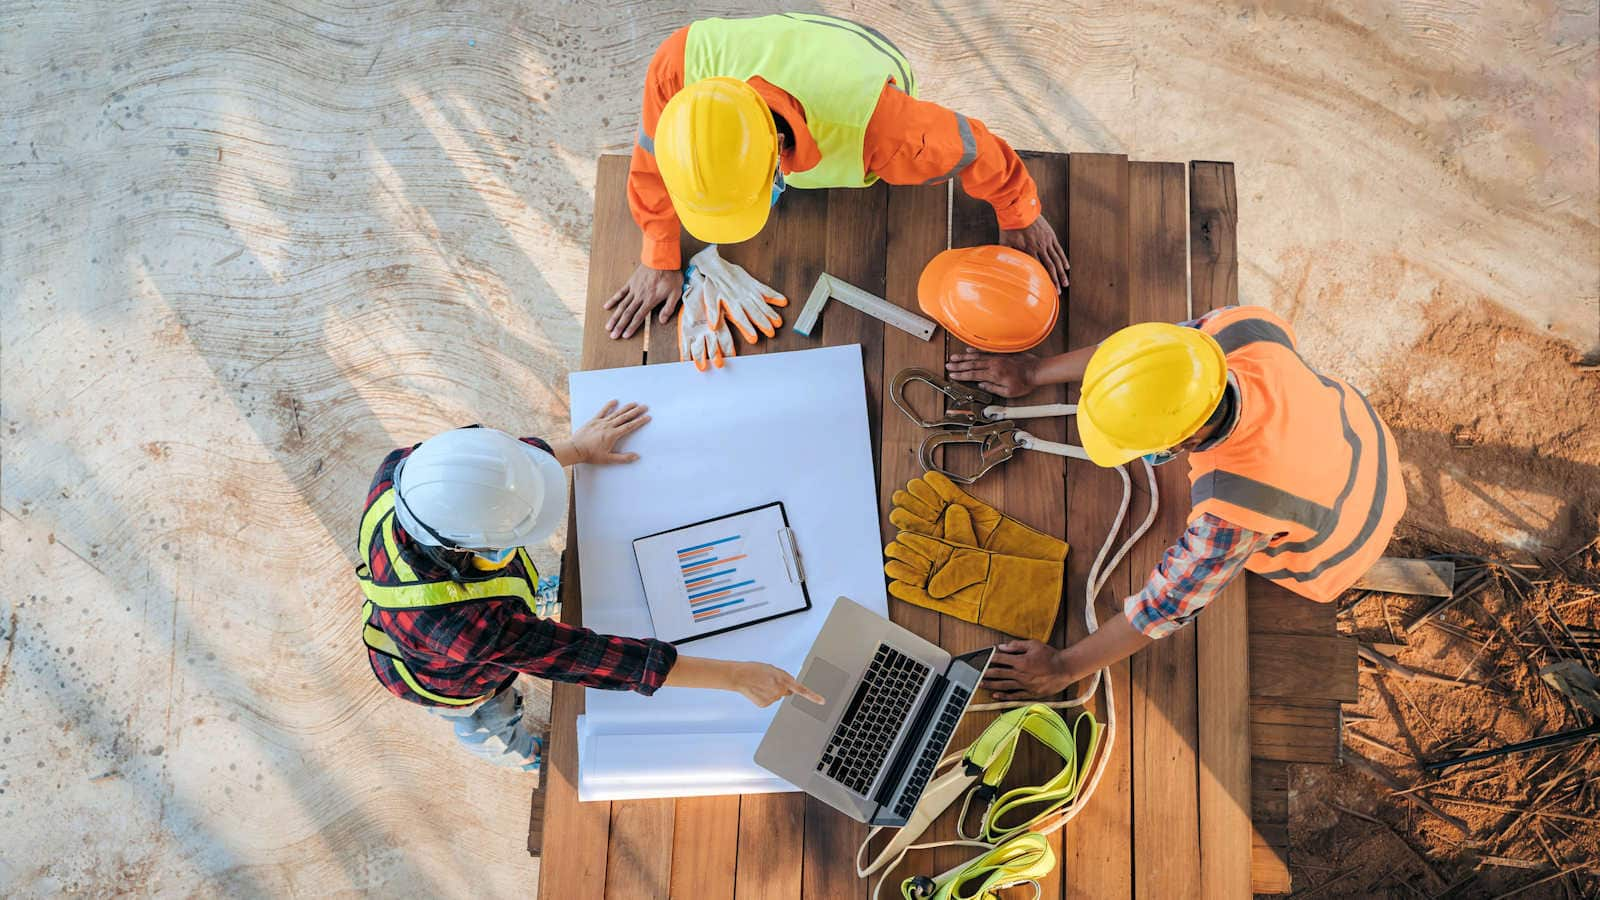 Construction Concepts & Design in Houston